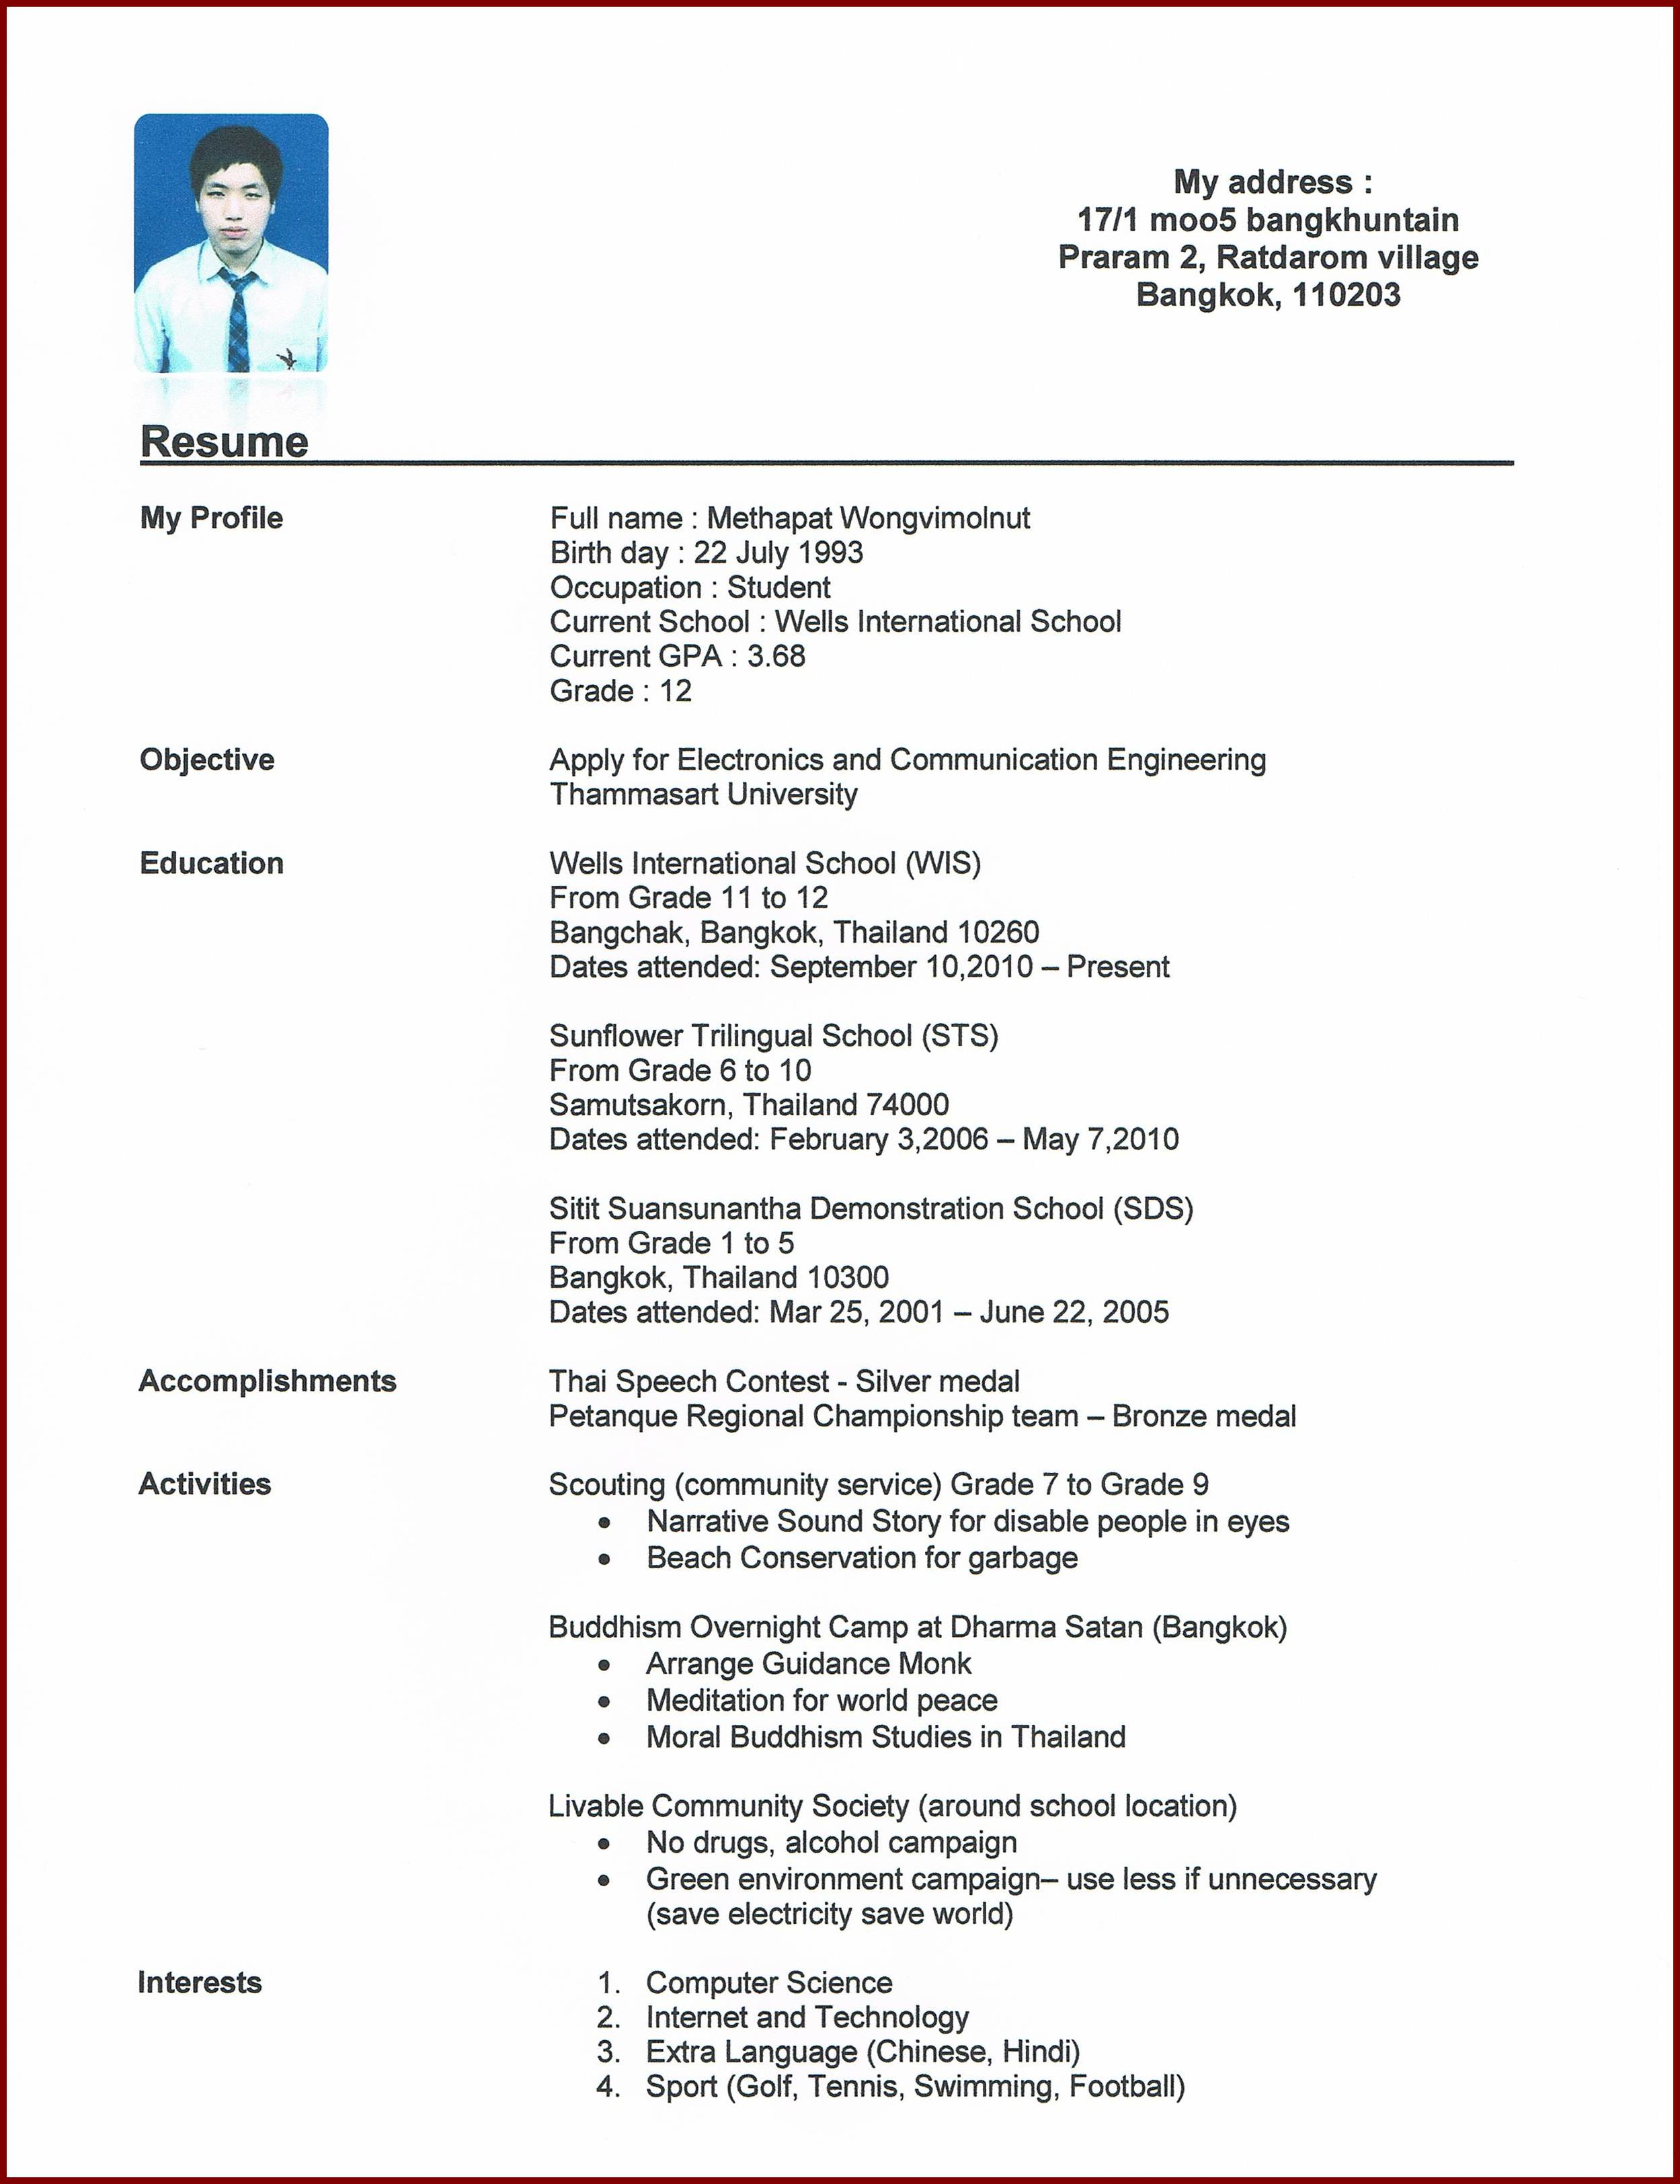 Make A Resume For Free Make My Resume Build My Resume Online Free For Resume Templates Free make a resume for free|wikiresume.com